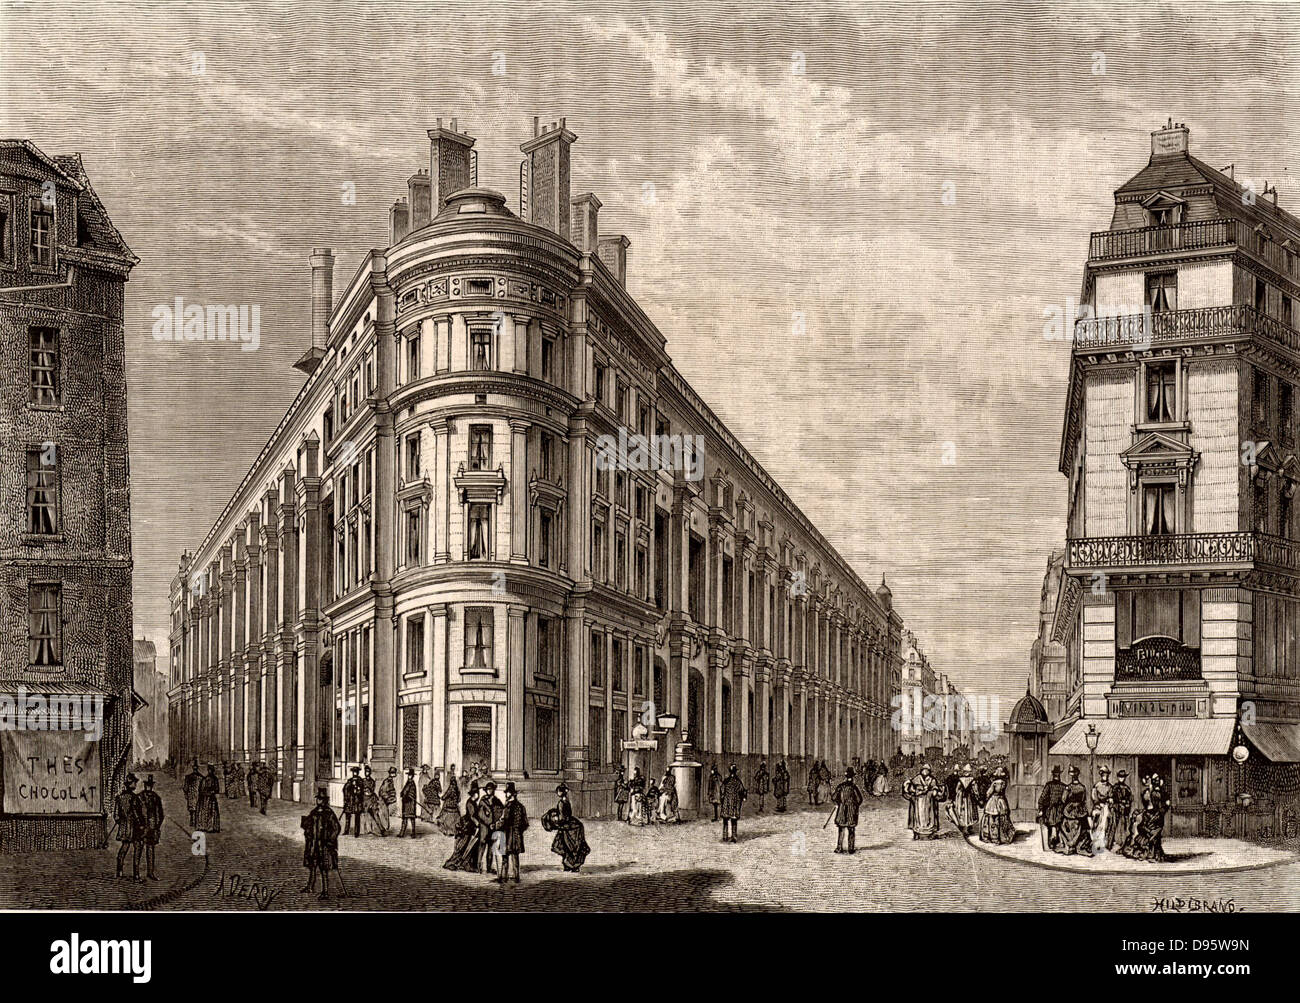 French postal service. The new main Post Office, rue du Louvre, Paris, France. Engraving from 'Le Journal de - Stock Image